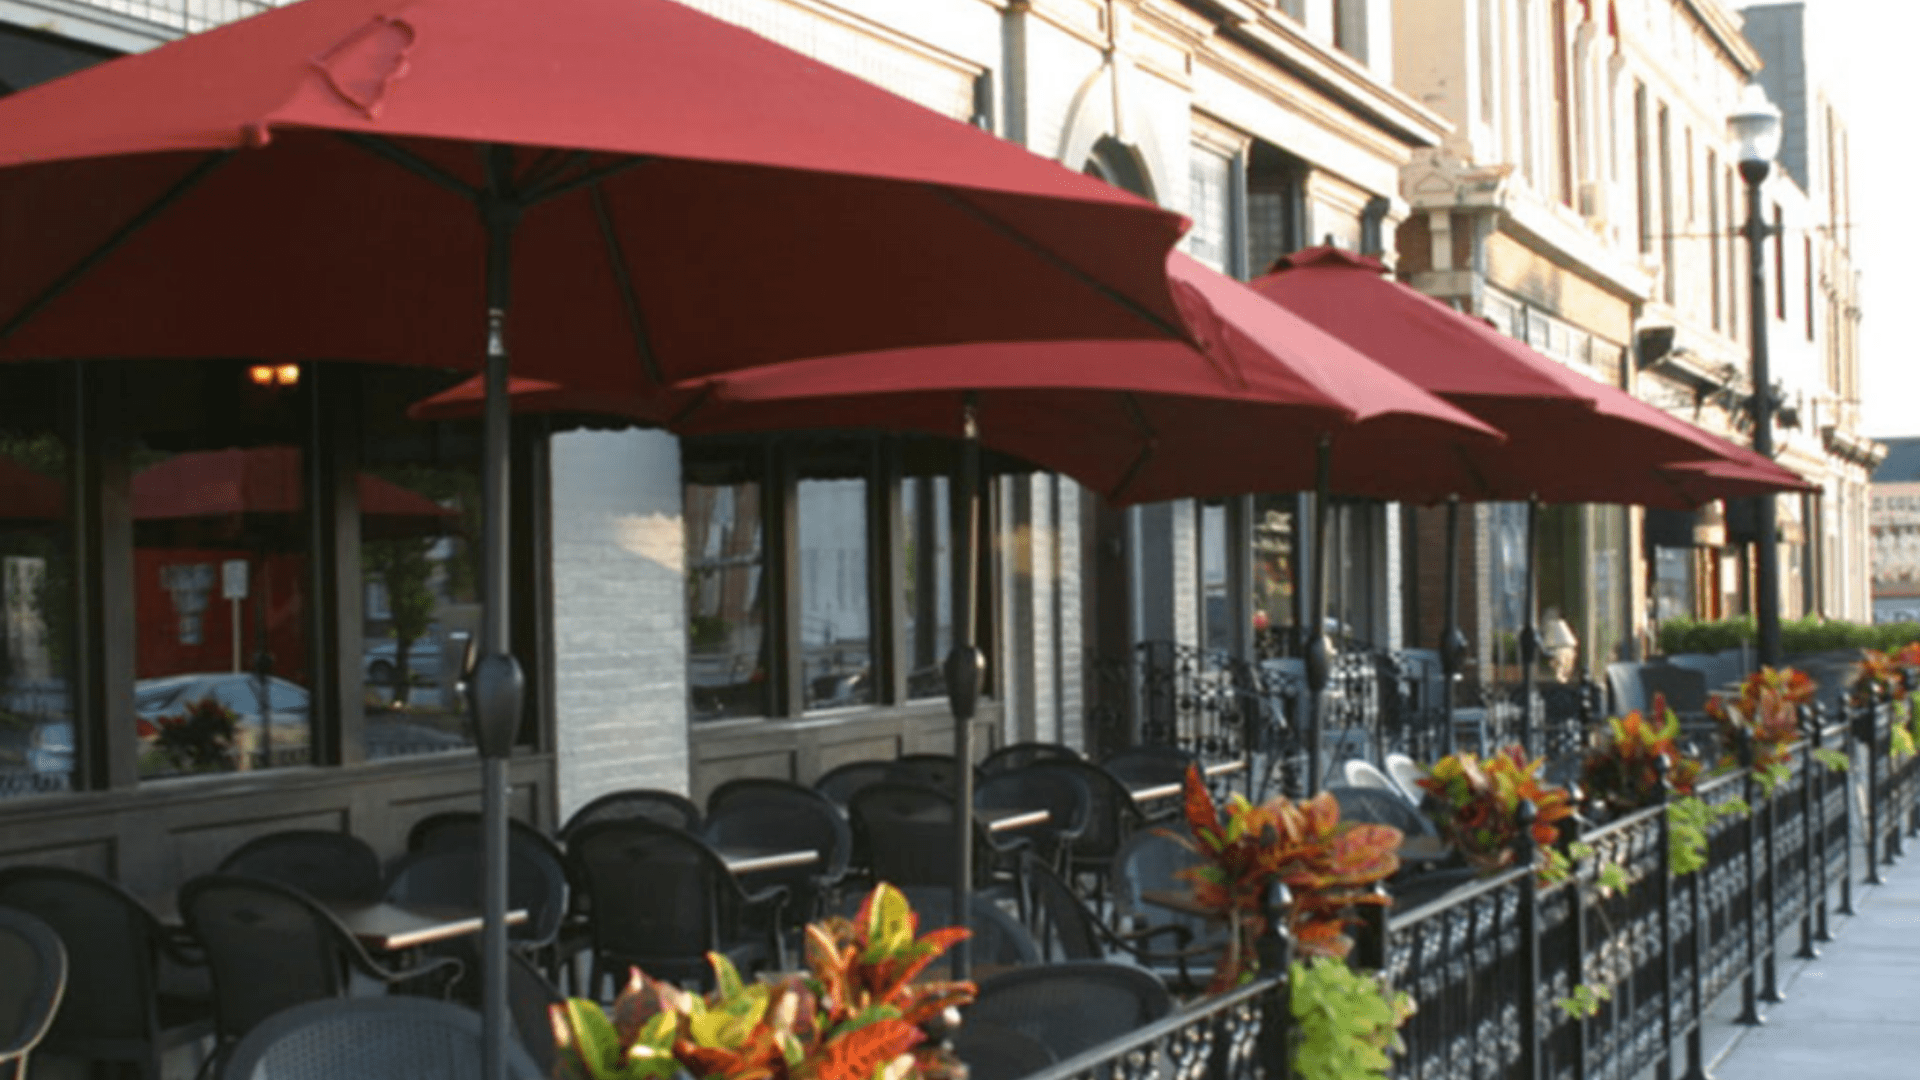 EXPERIENCE A RELAXED AMBIENCE & VIBRANT OUTDOOR DINING